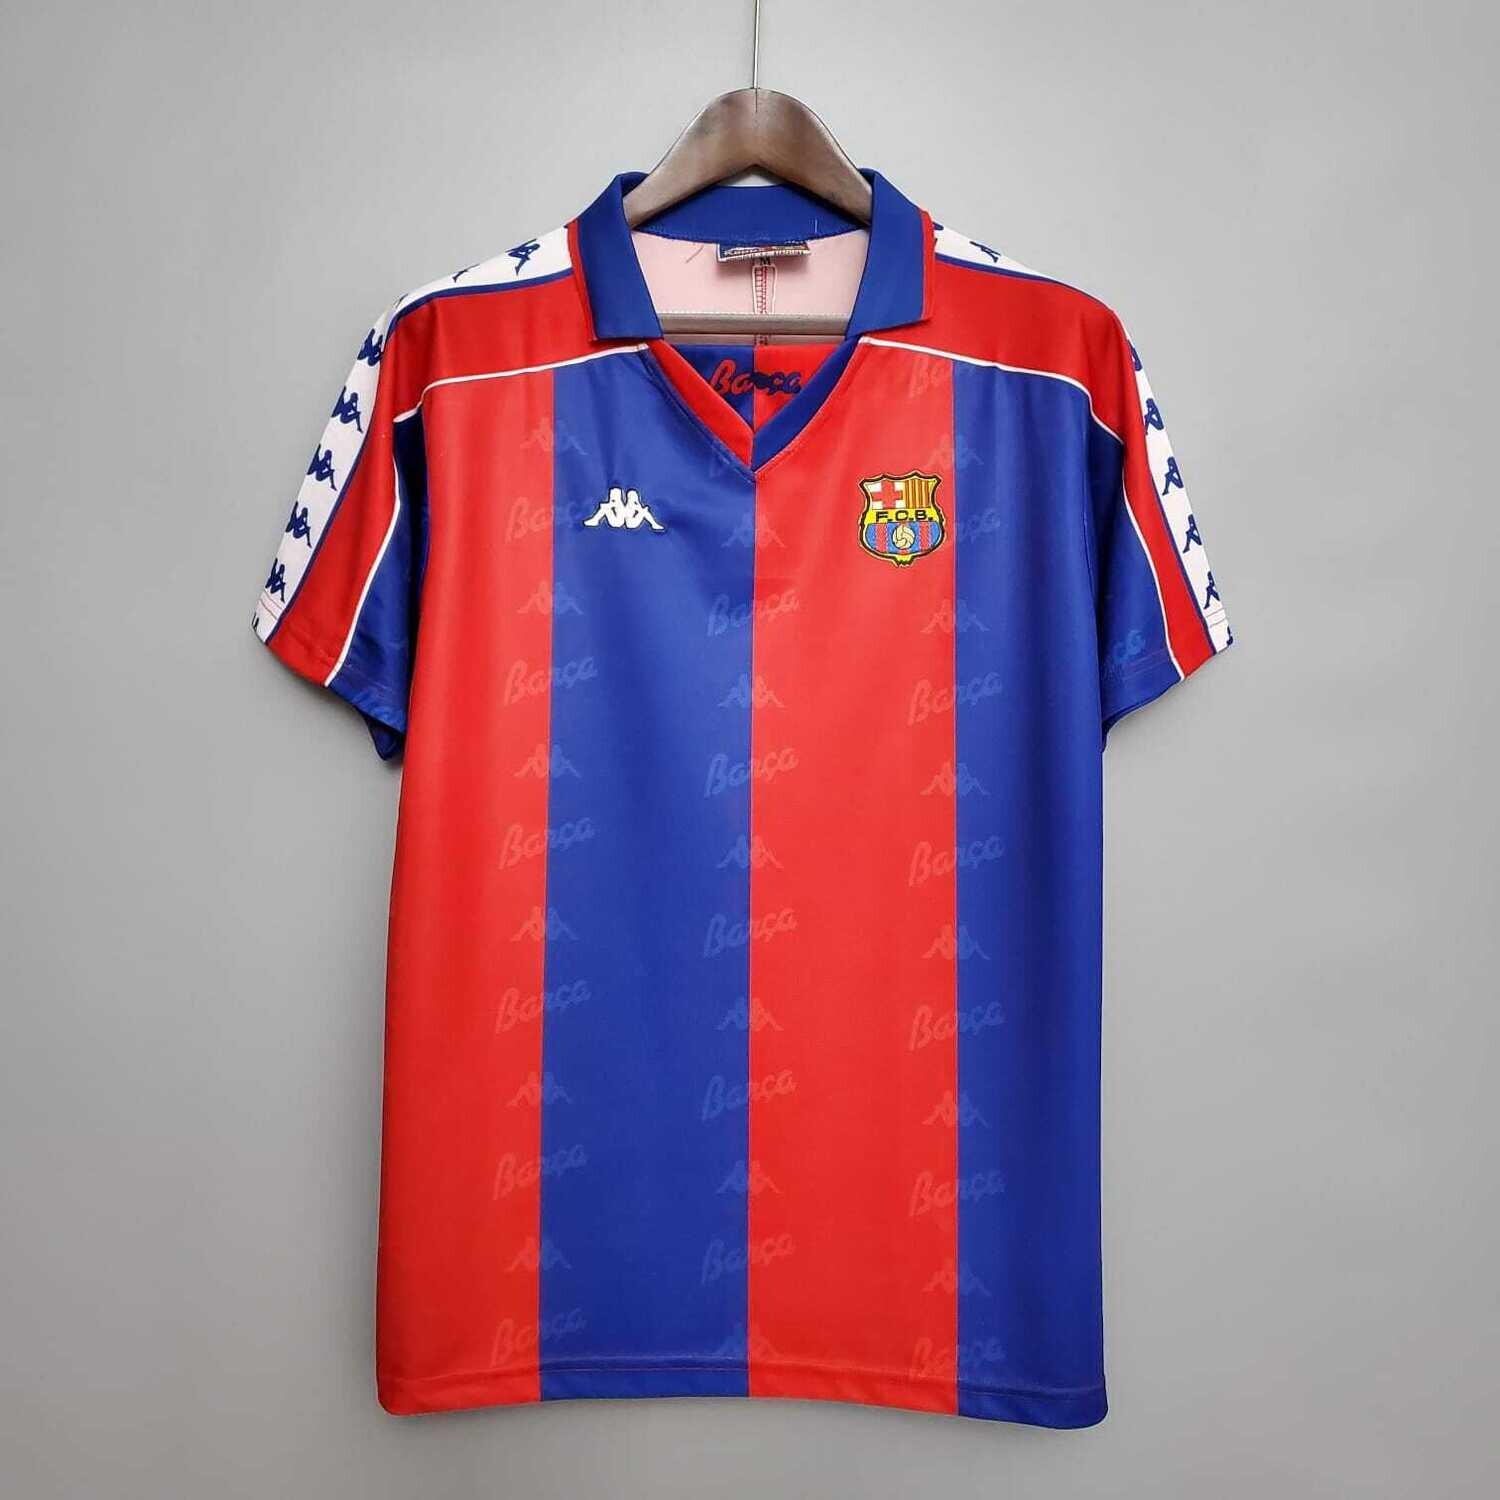 Barcelona 1992-95 Retro Home Jersey [Pre-paid Only]